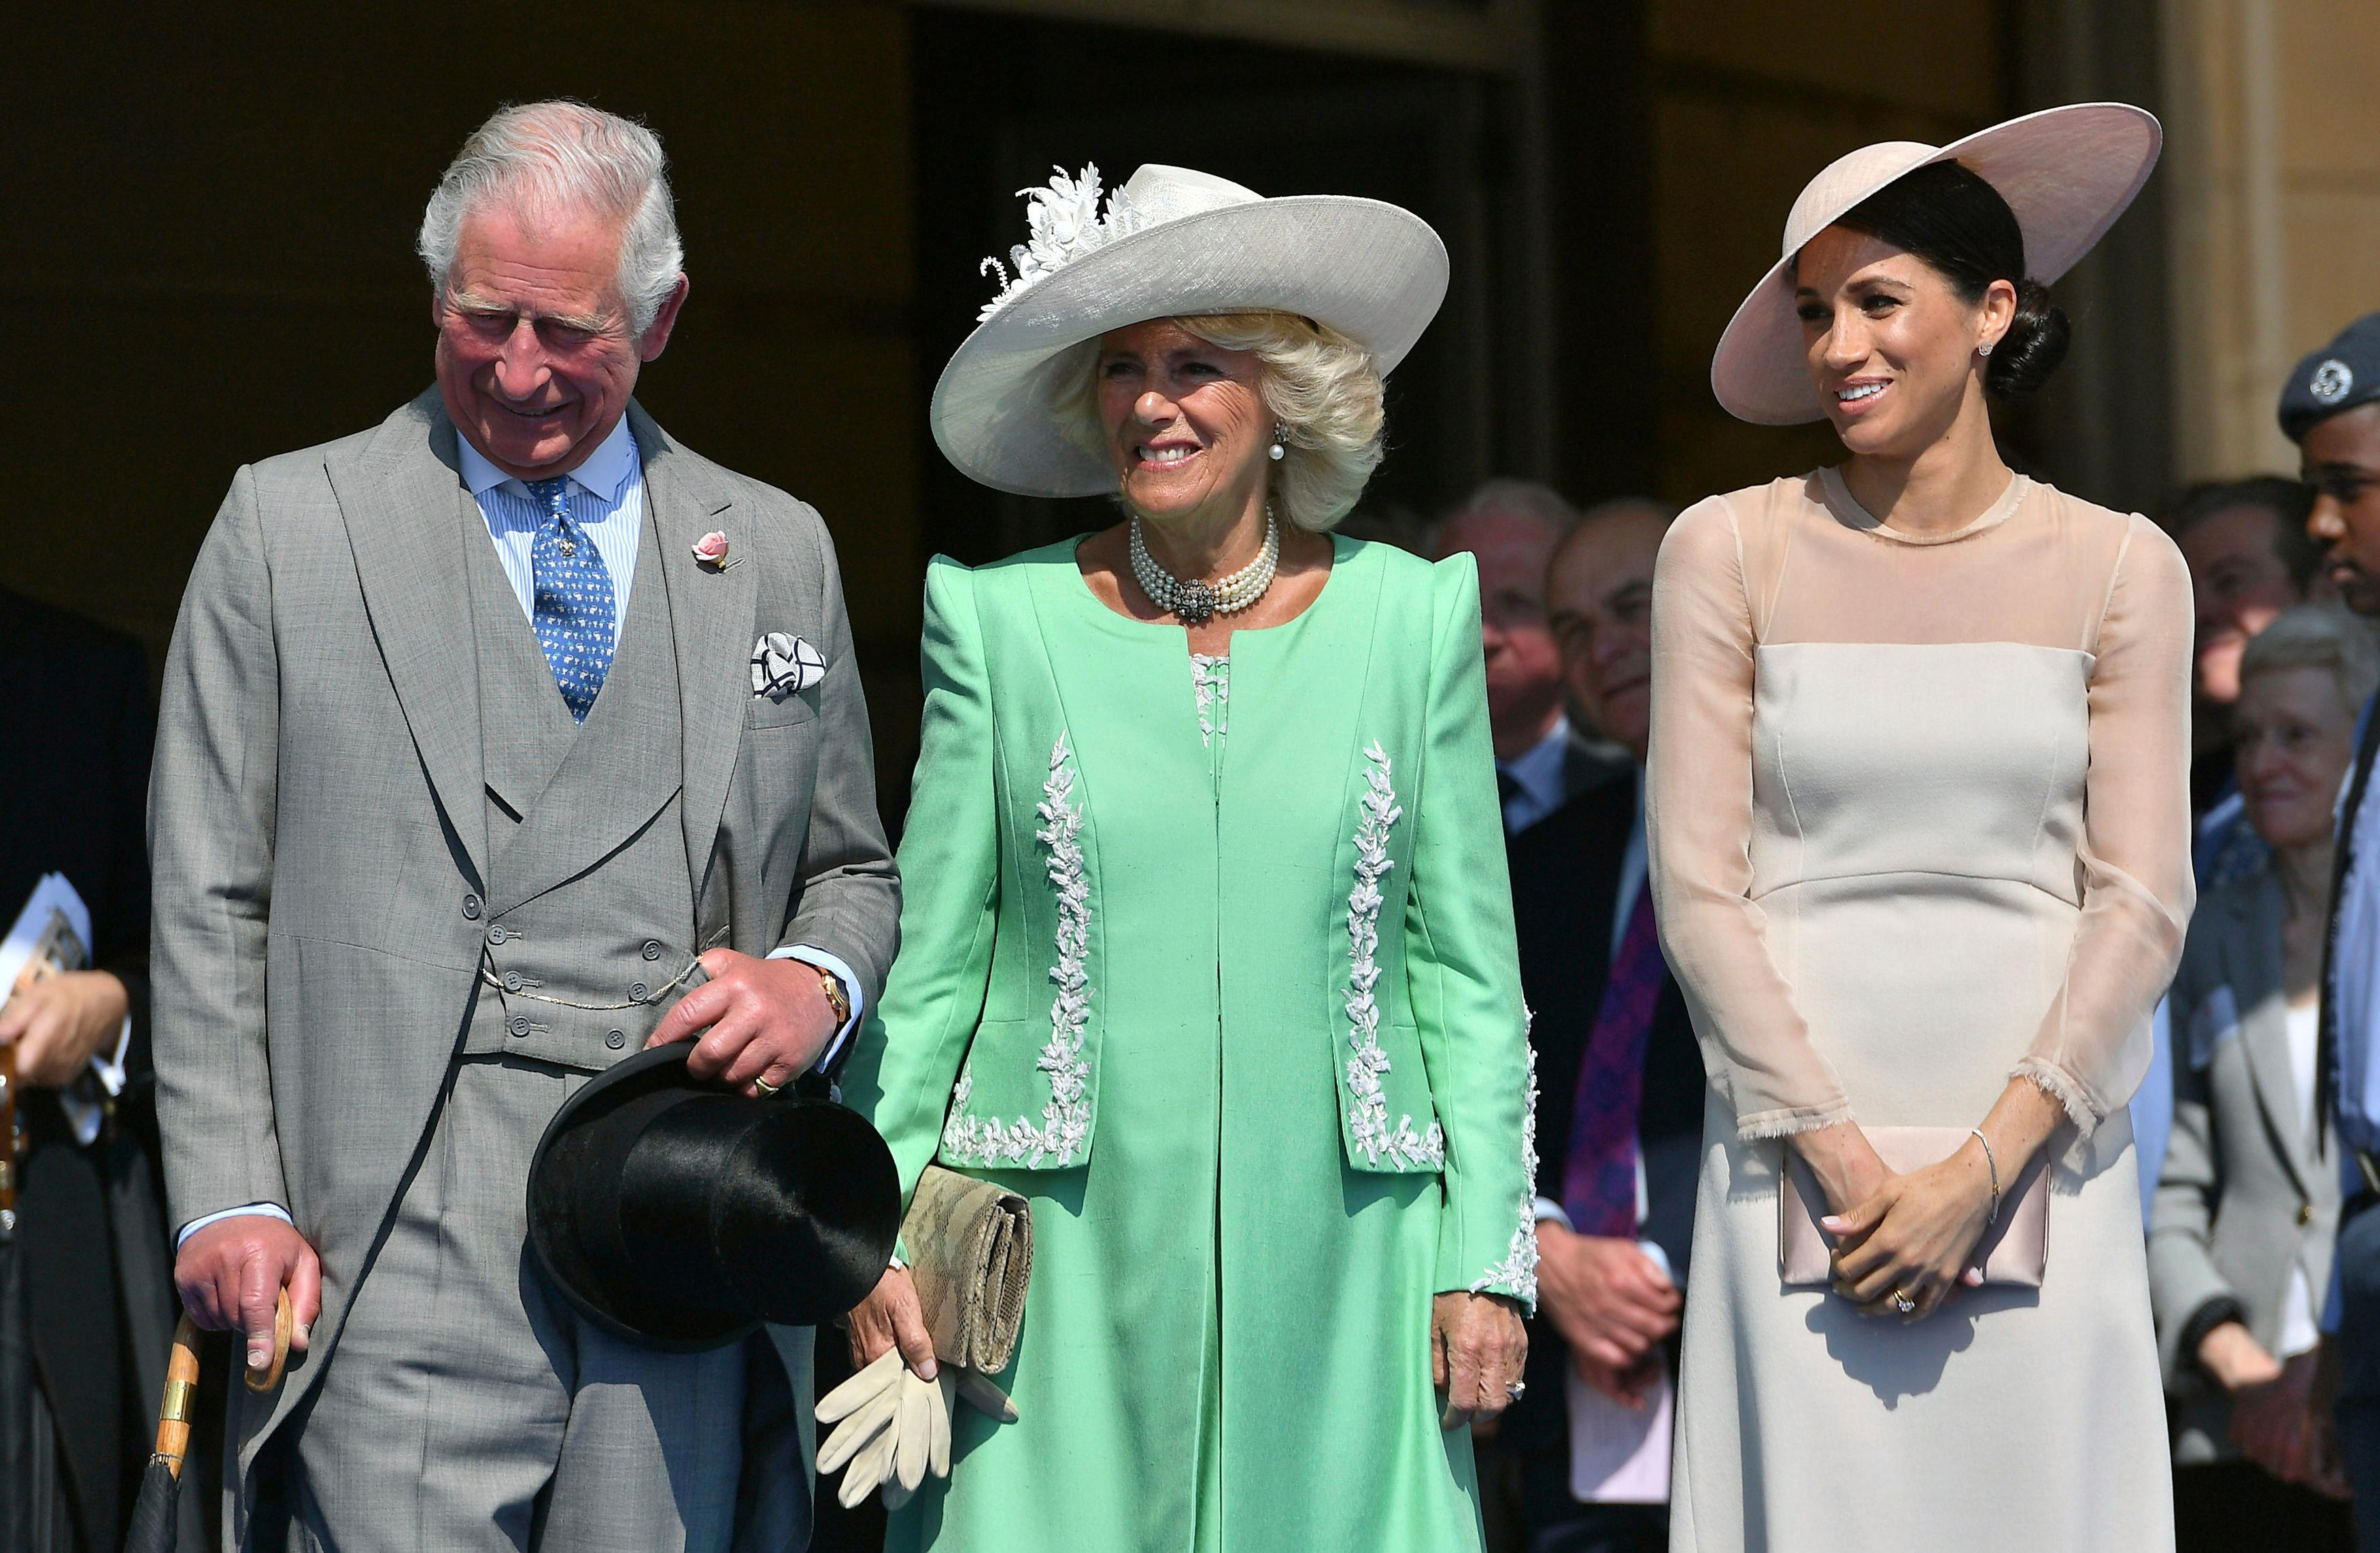 From left, Britain's Prince Charles, Camilla, the Duchess of Cornwall, and Meghan, the Duchess of Sussex attend a garden party at Buckingham Palace in London, Tuesday May 22, 2018. The event is part of the celebrations to mark the 70th birthday of Prince Charles.  (Dominic Lipinski/Pool Photo via AP)